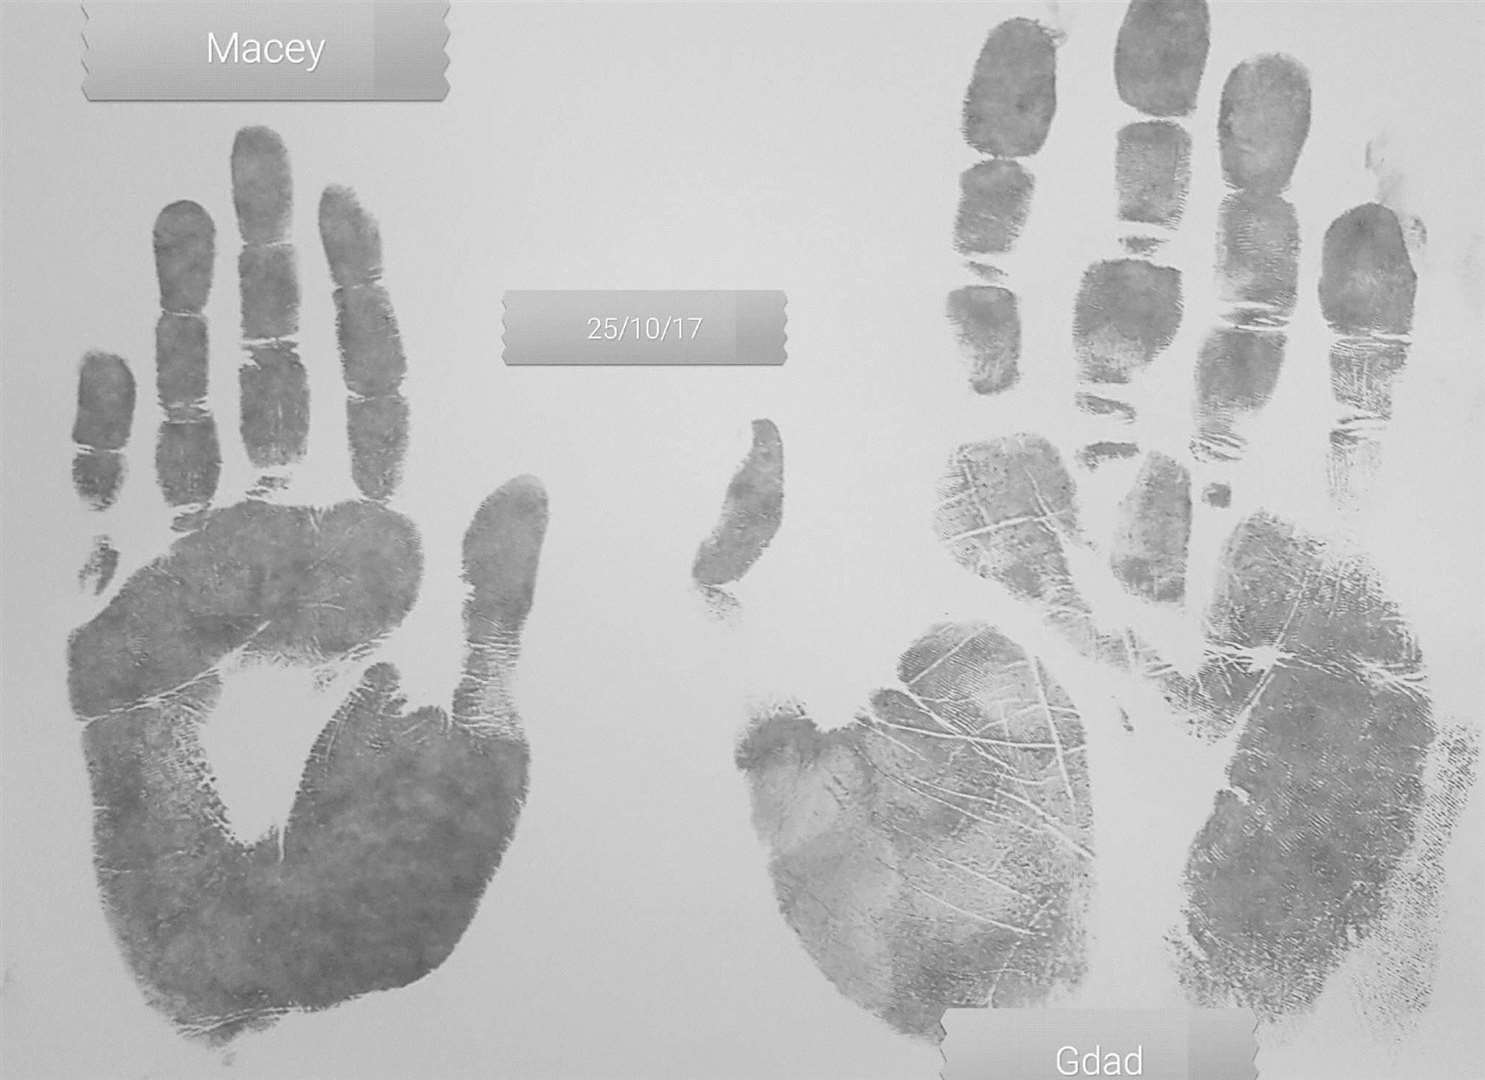 Macey and Marc's handprints side by side